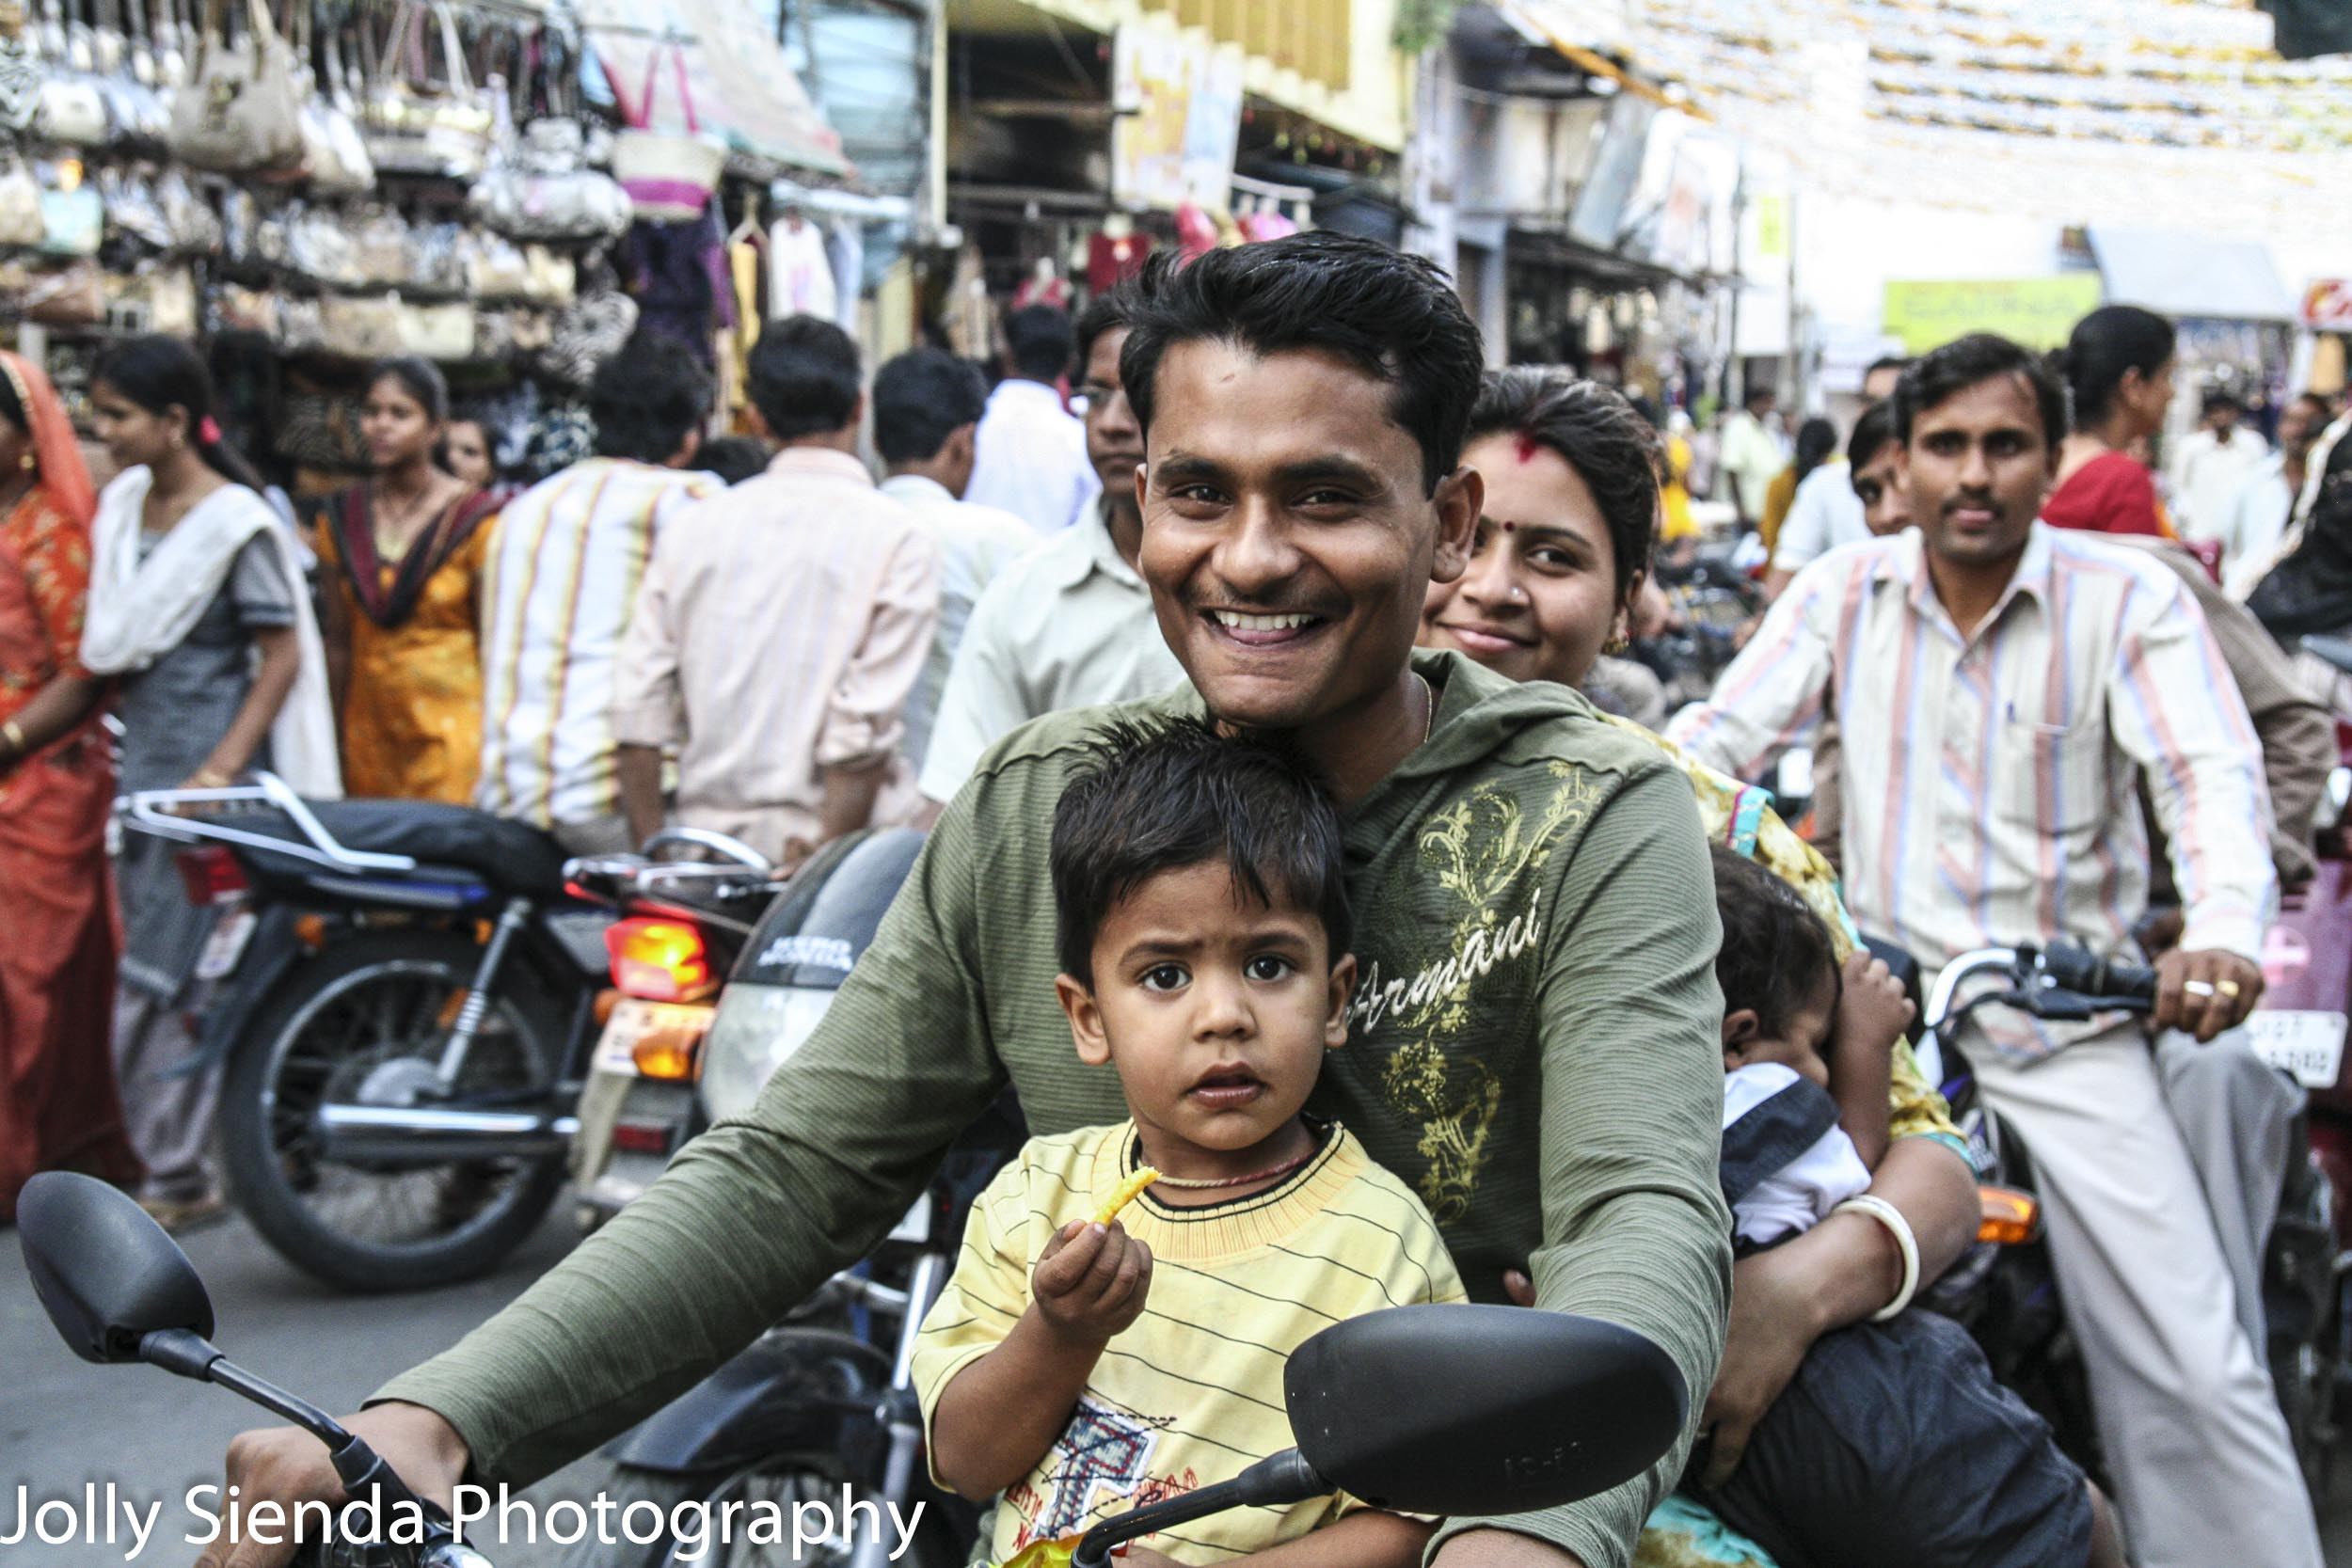 Family of four gets around the crowded market on a motorcyle